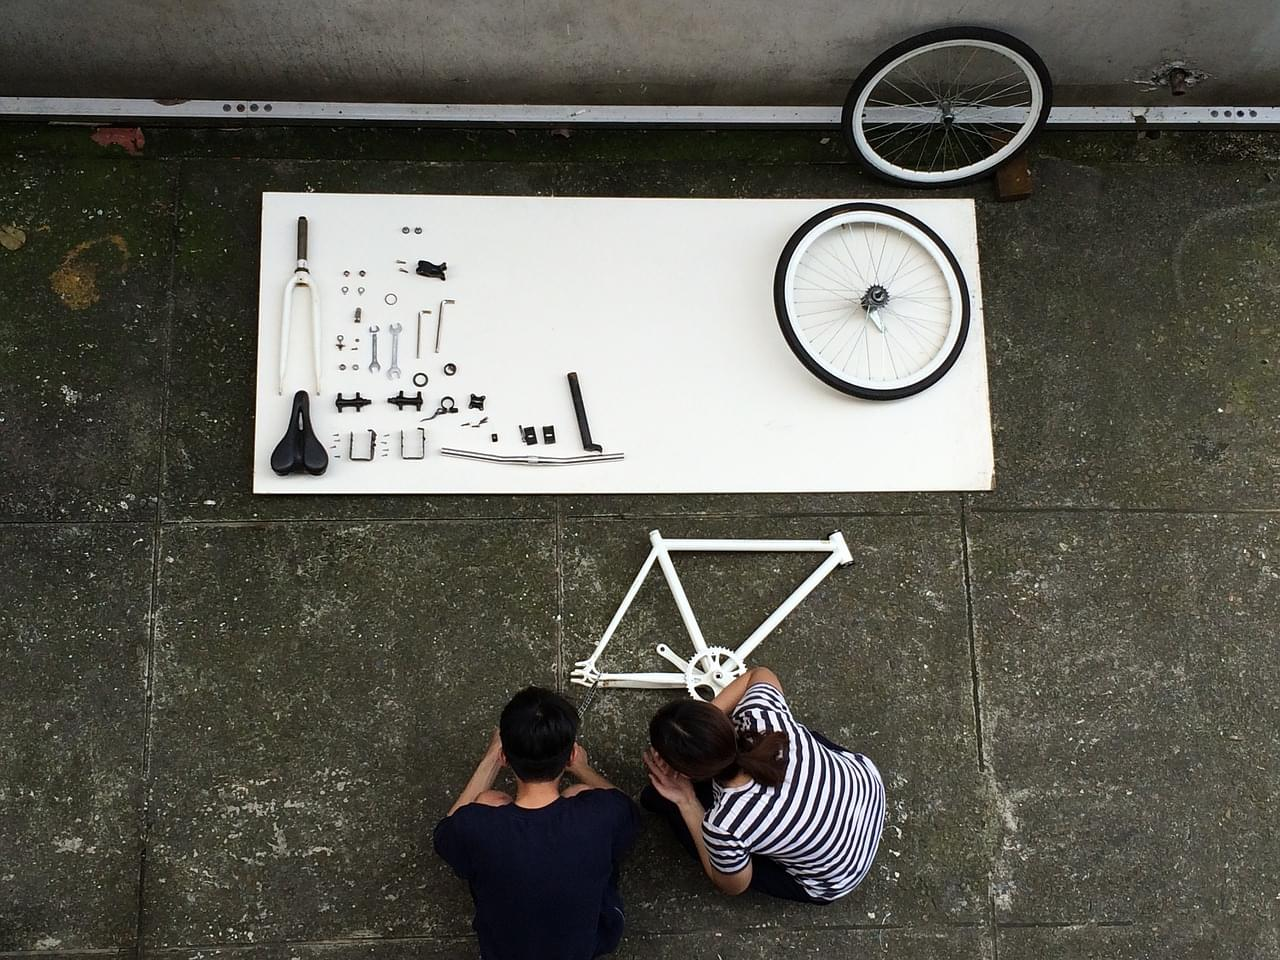 Assembling a bicycle